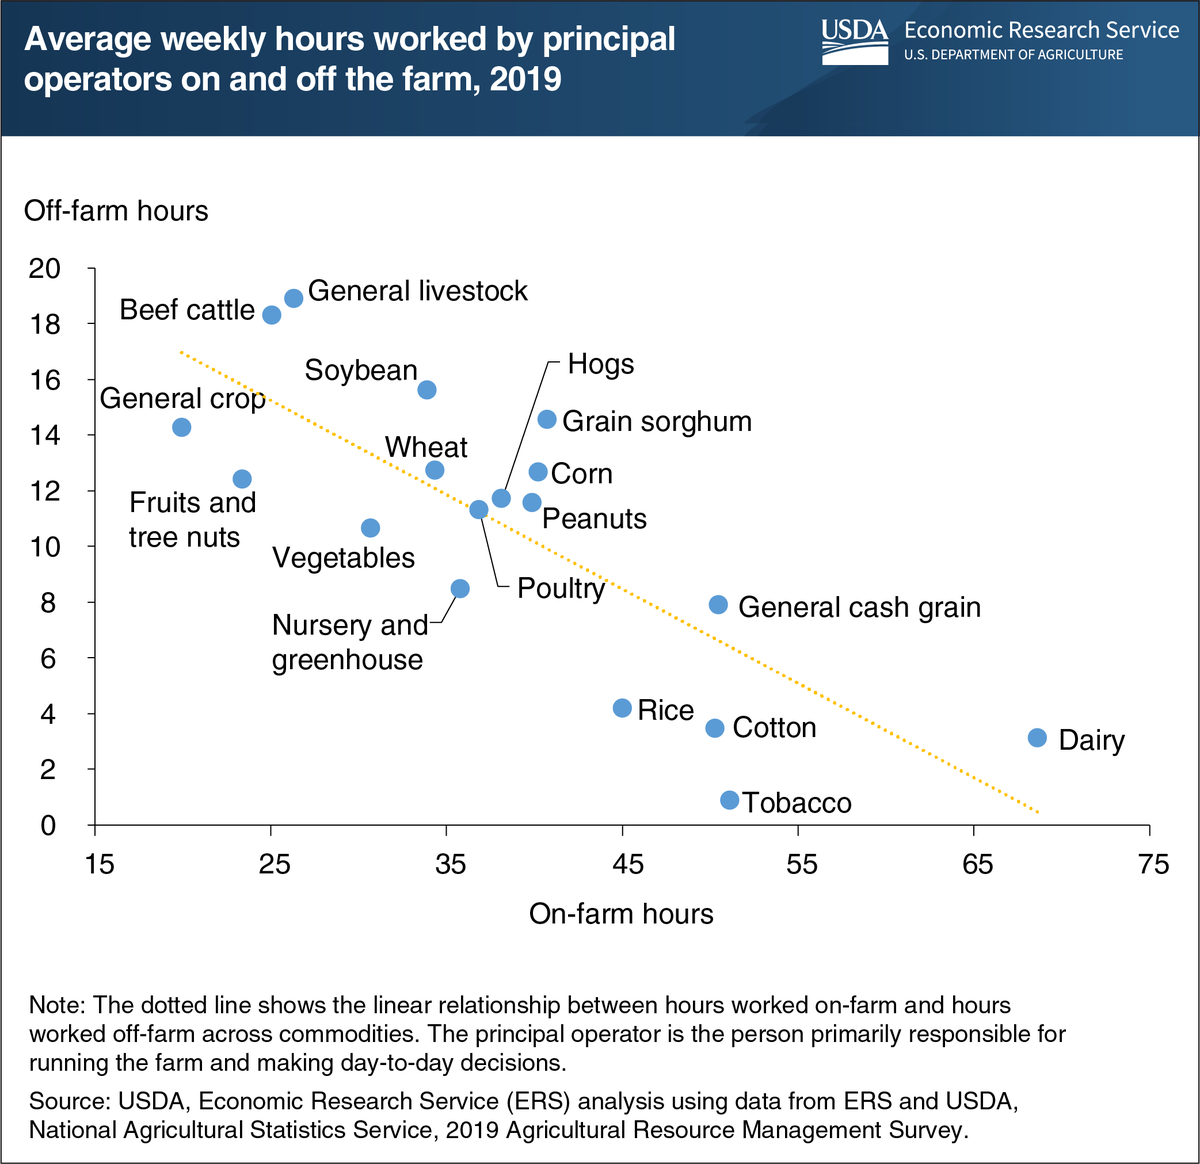 Average Weekly Hours Worked by Principal Operators On and Off the Farm. 2019